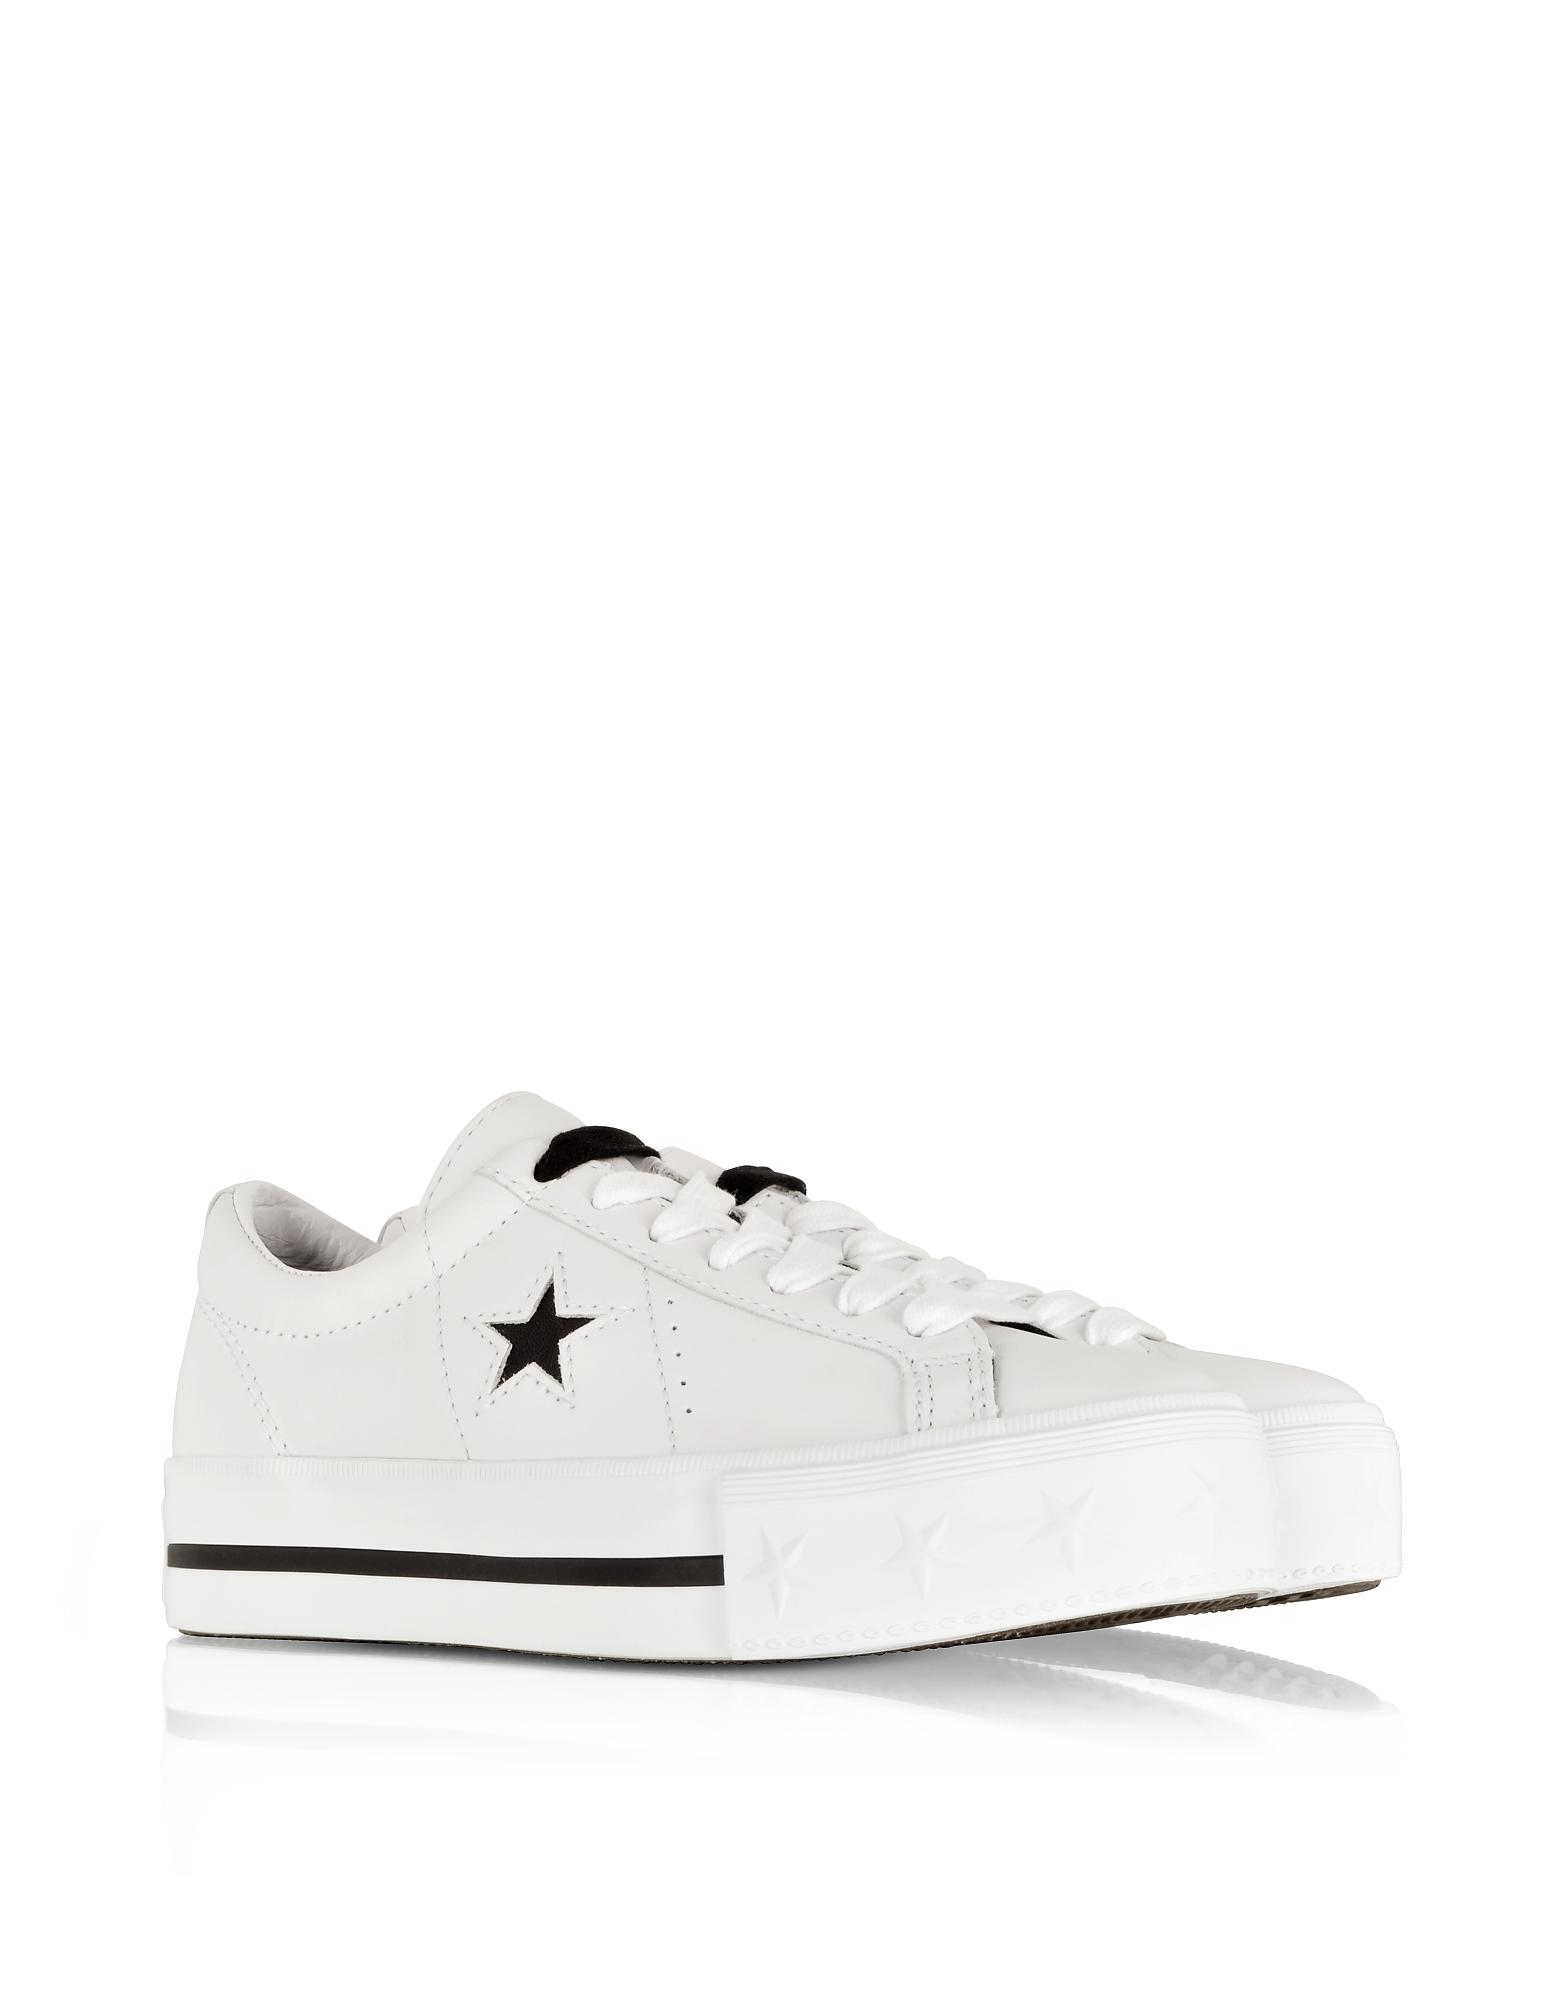 5ced9f06413 Lyst - Converse One Star Platform Ox White Leather Low Top Sneakers ...